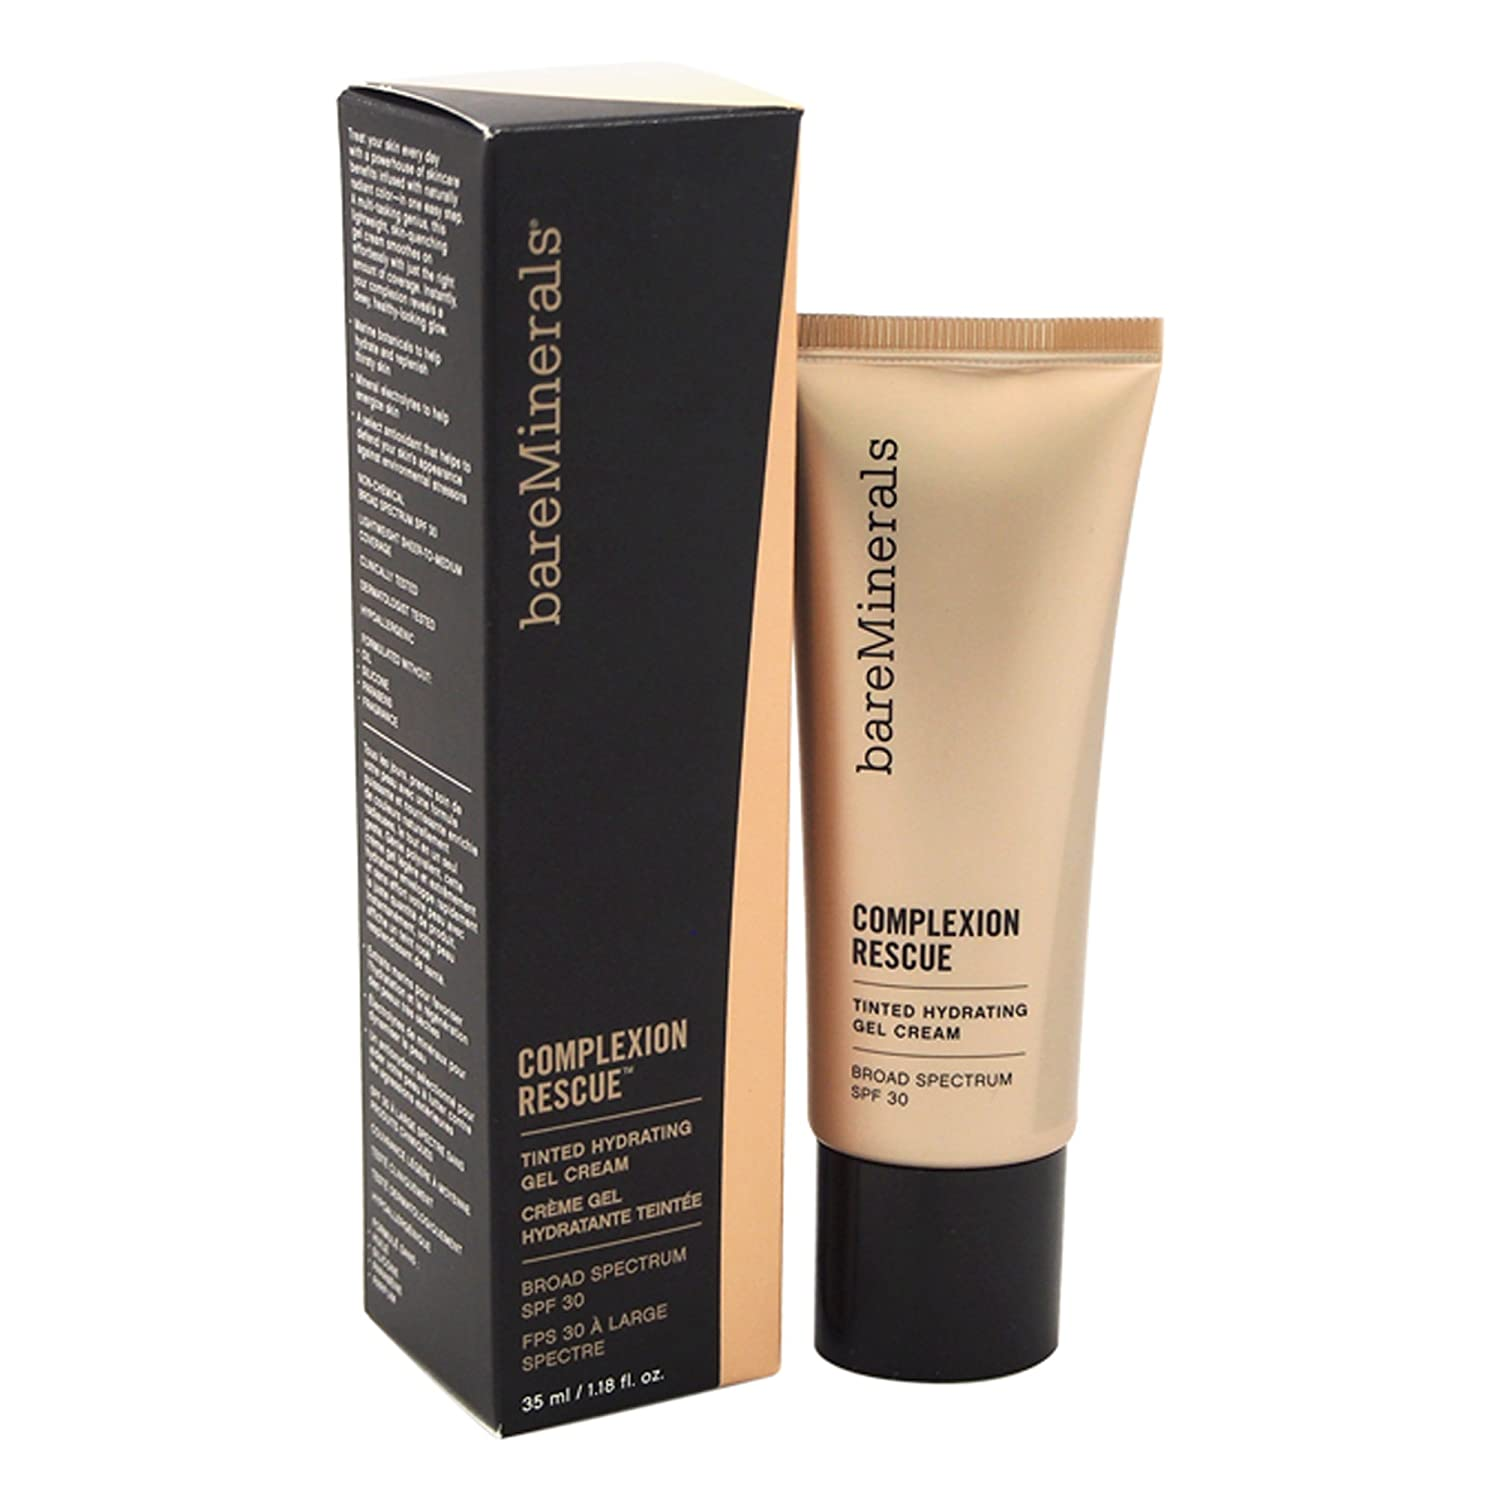 Bareminerals Complexion Rescue Tinted Hydrating Gel Cream SPF 30, Vanilla, 1.18 Ounce 098132399956